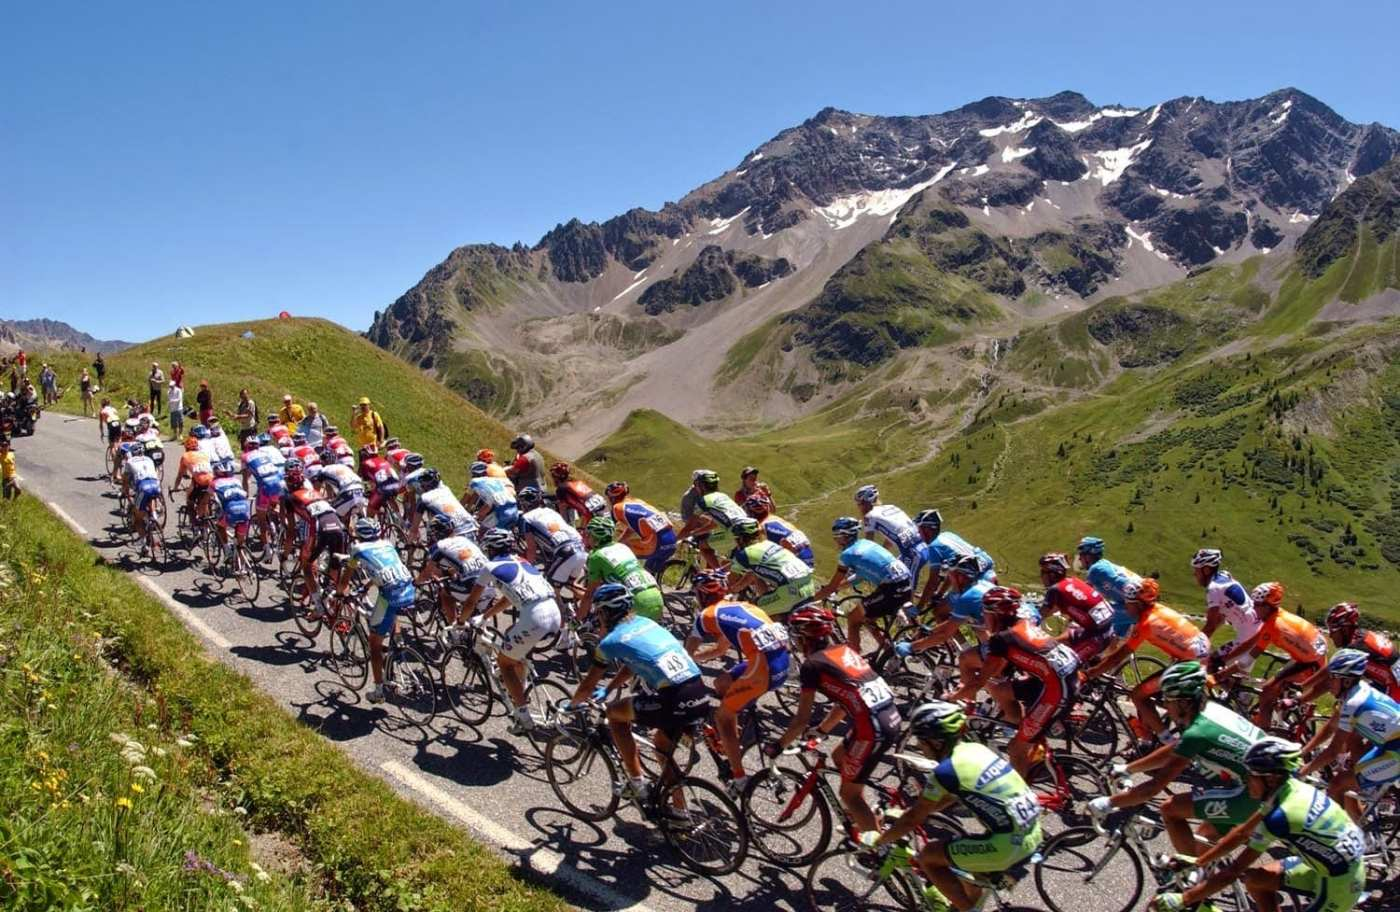 tour-de-france-hd-wallpaper-3